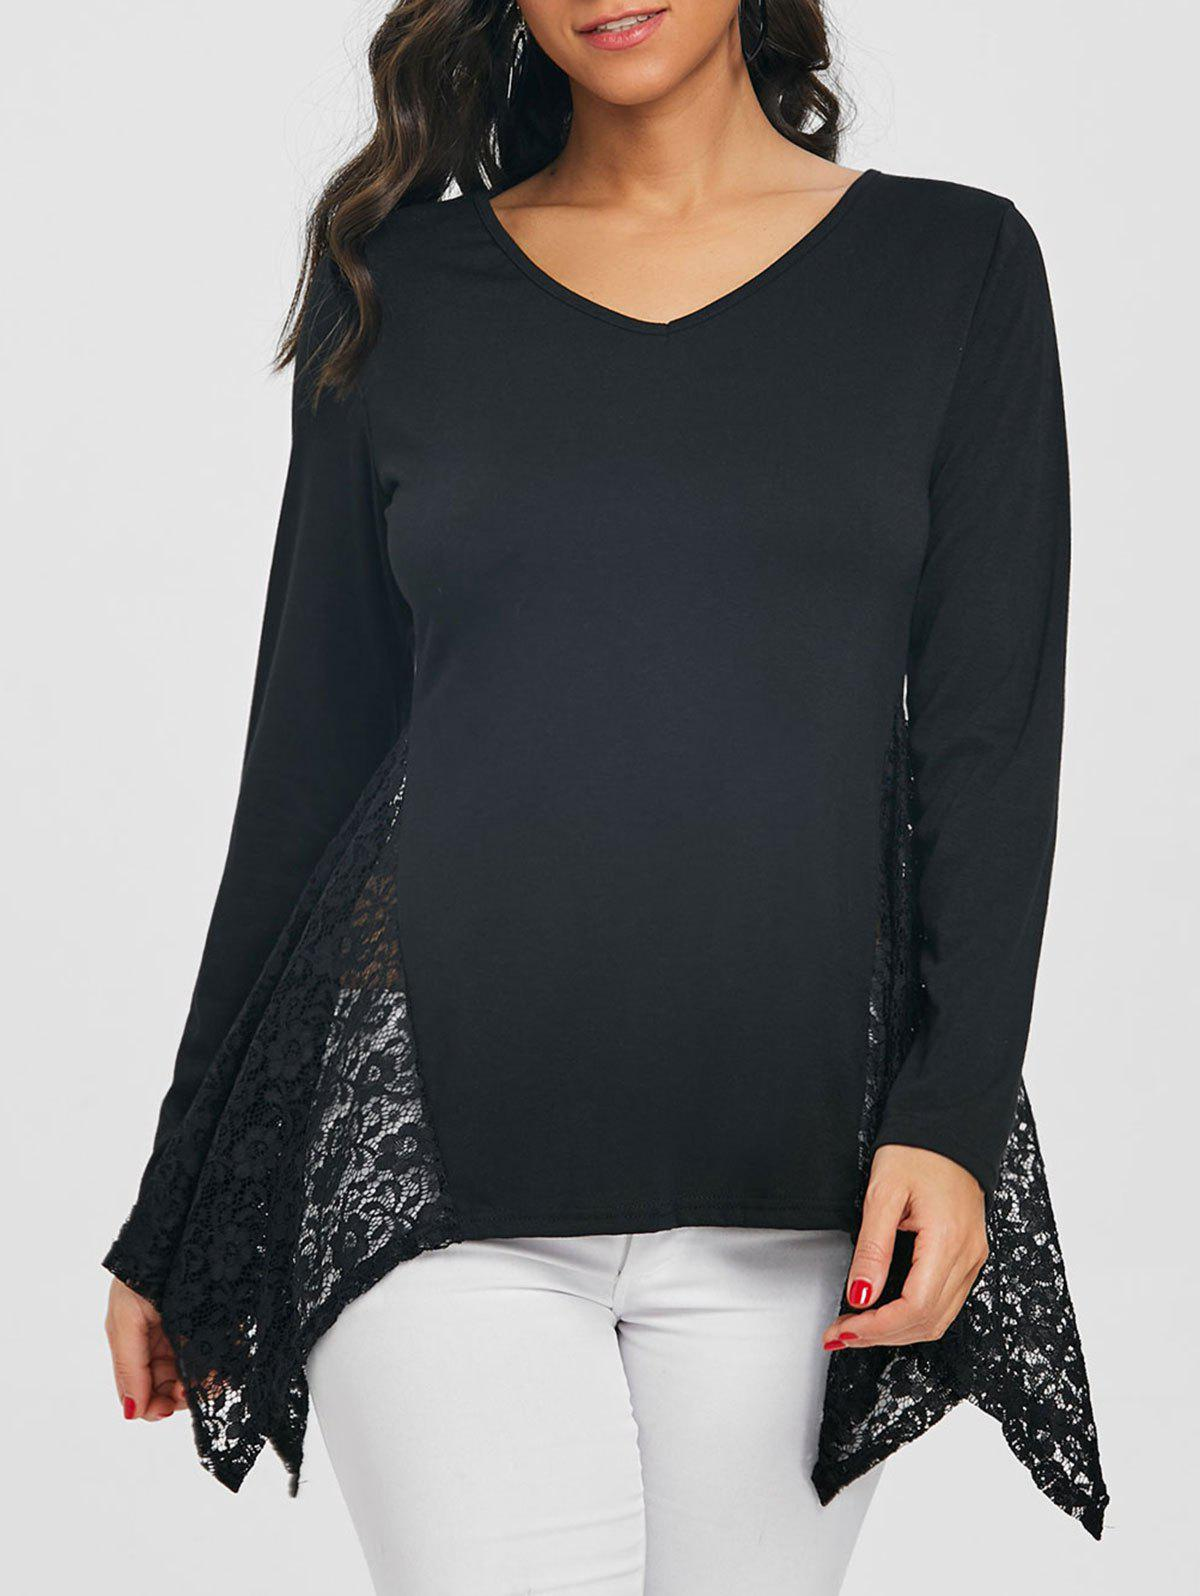 Asymmetric V Neck Lace Panel Tunic T-shirt - BLACK 2XL